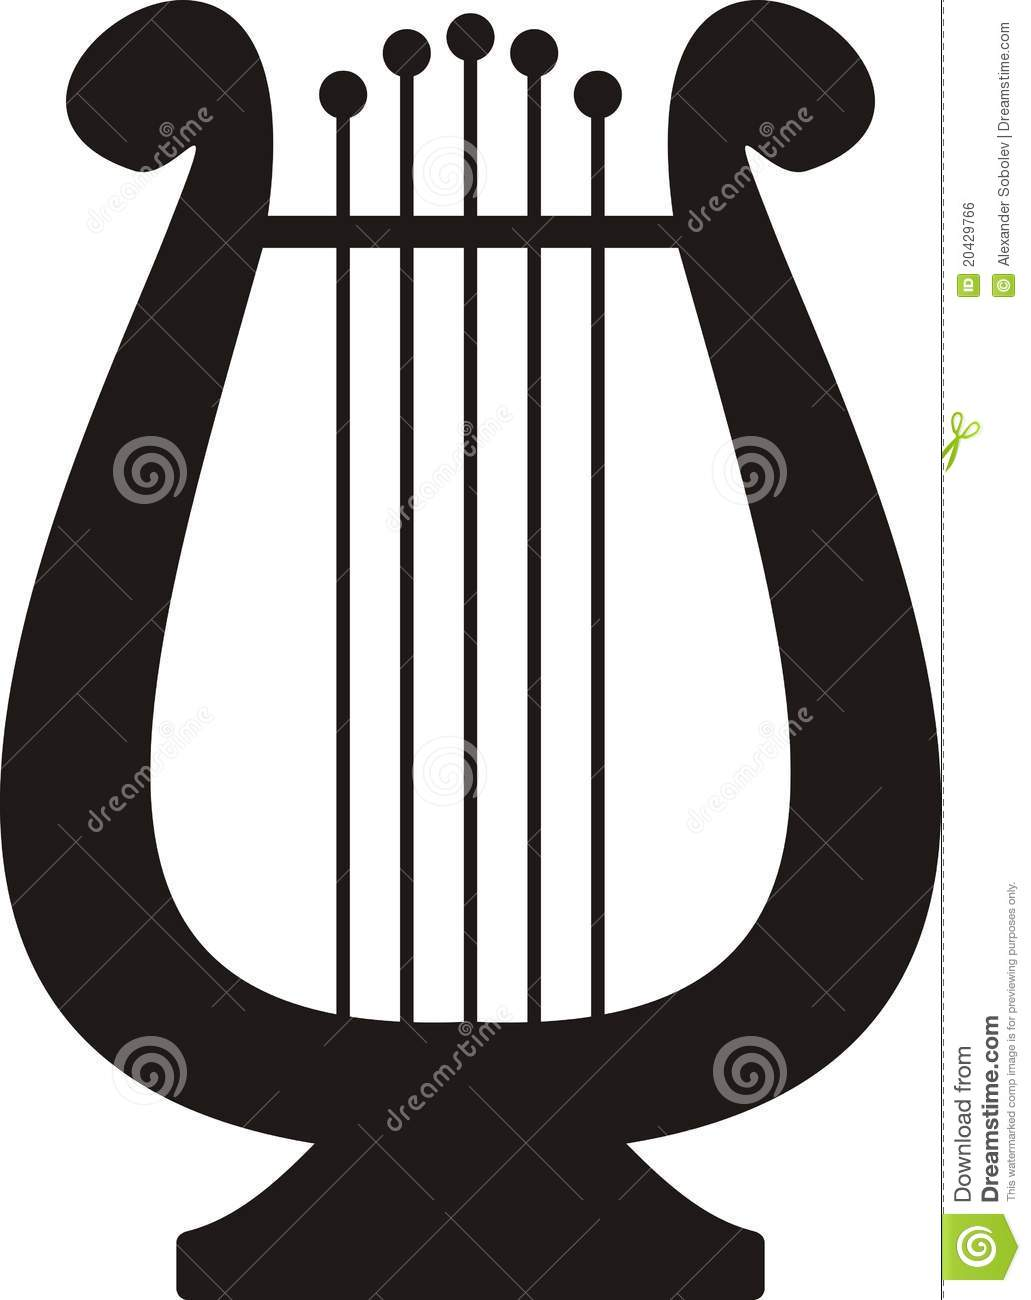 Lyre Symbol Of Music And Arts Stock Vector Illustration Of